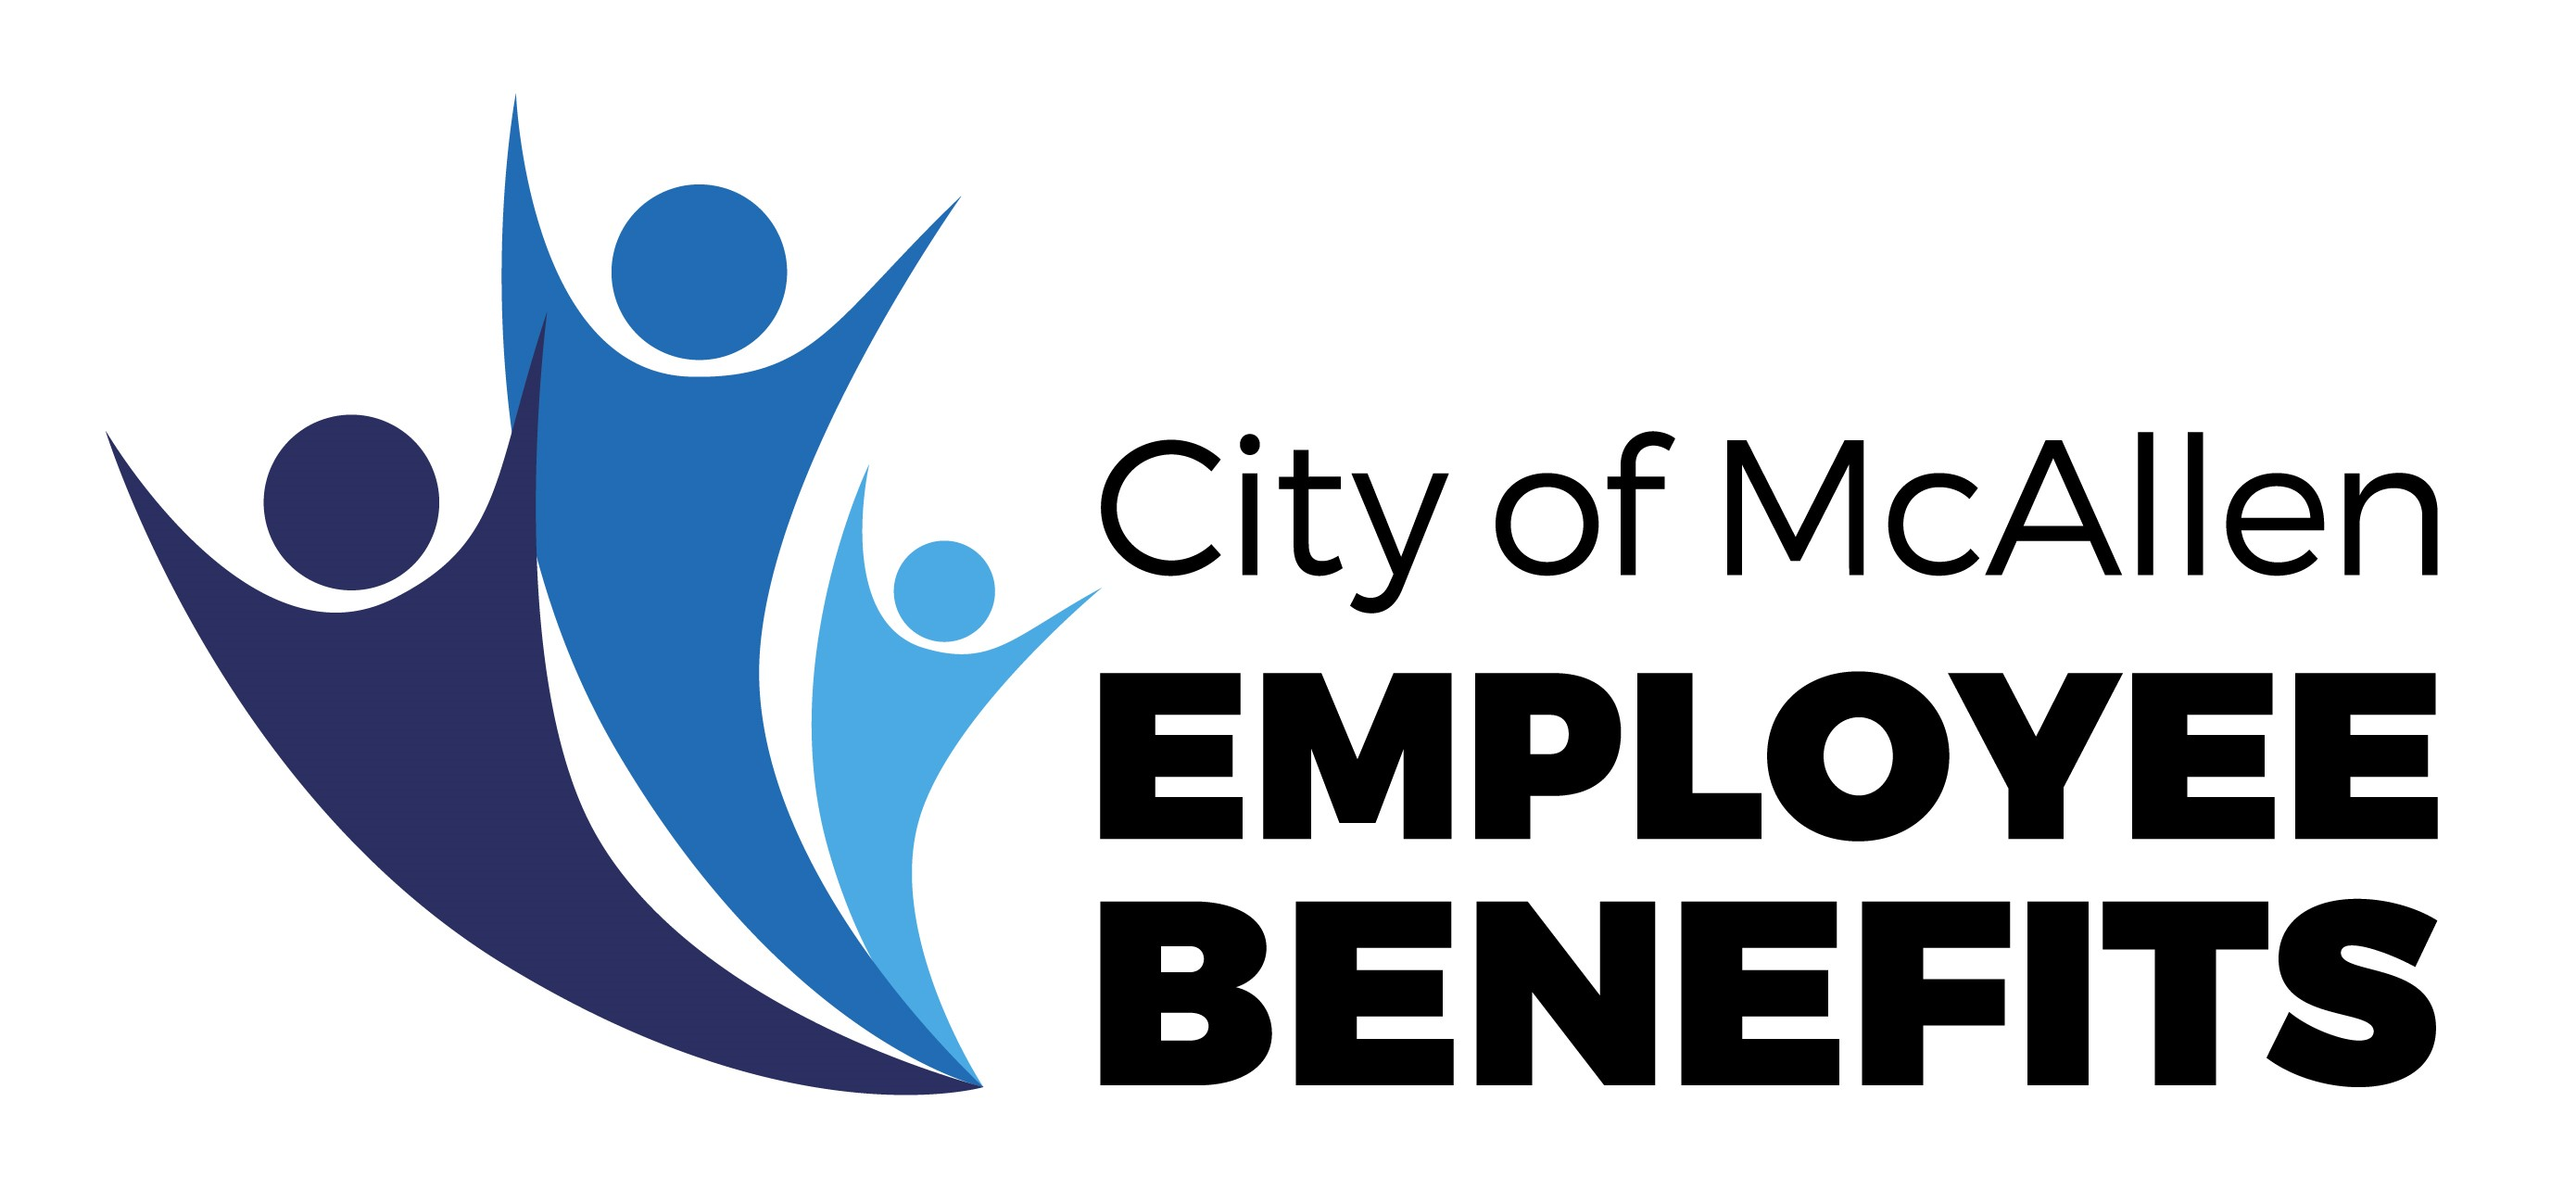 charter communications employment benefits City of McAllen Employee Benefits Department